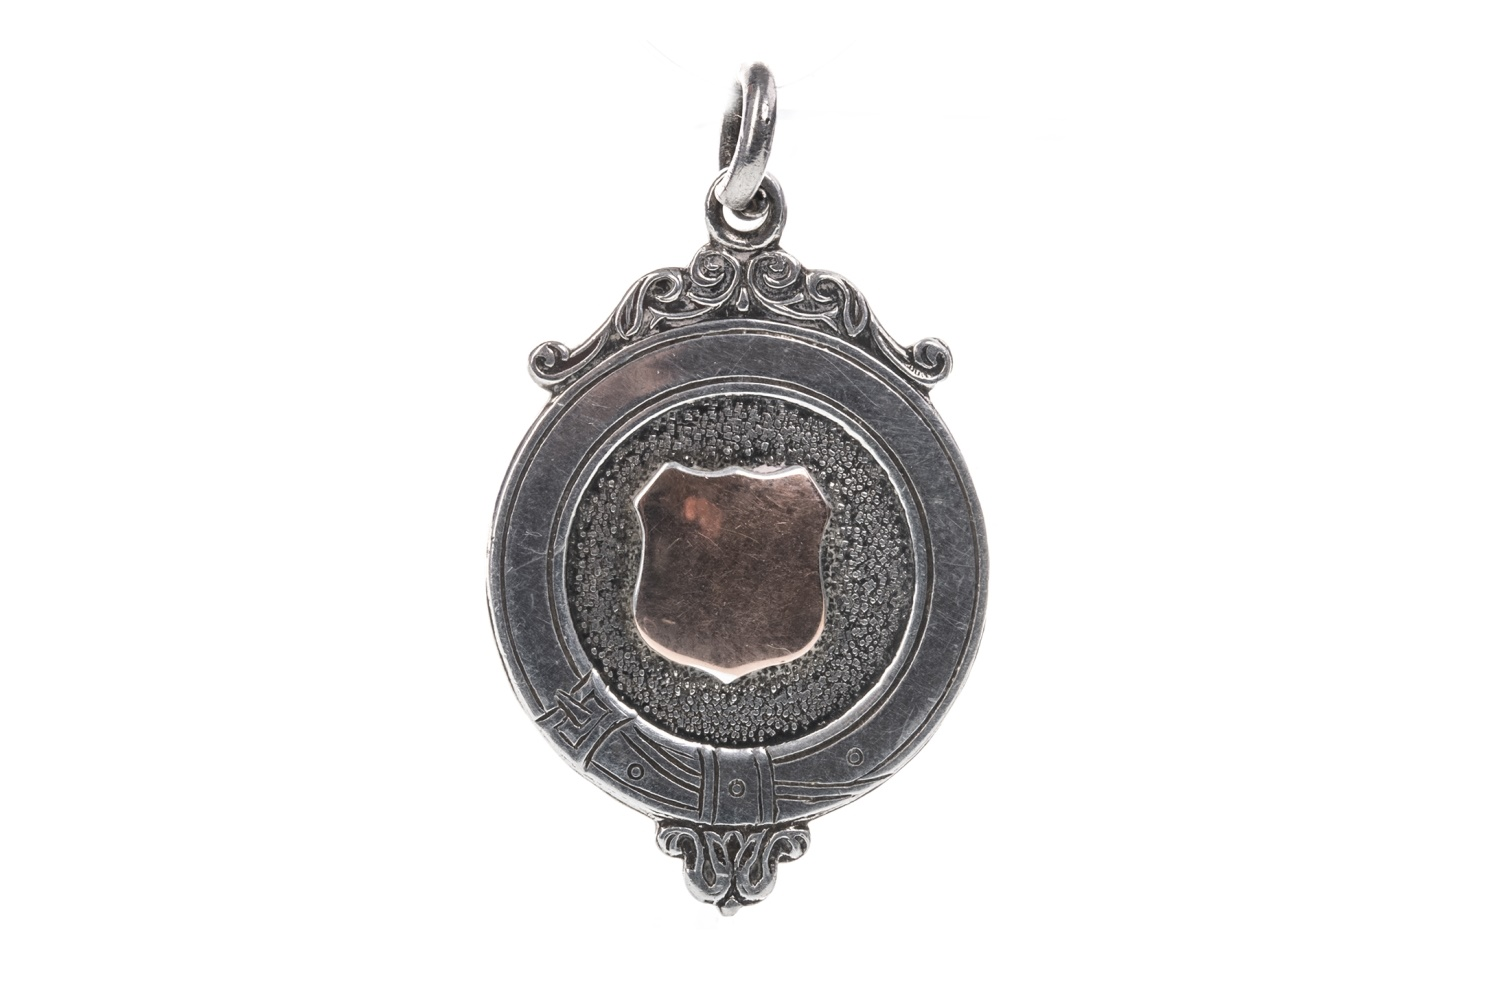 Lot 1710 - JIM BAXTER OF RANGERS F.C. - HIS 'DICK CUP' MEDAL 1952/53